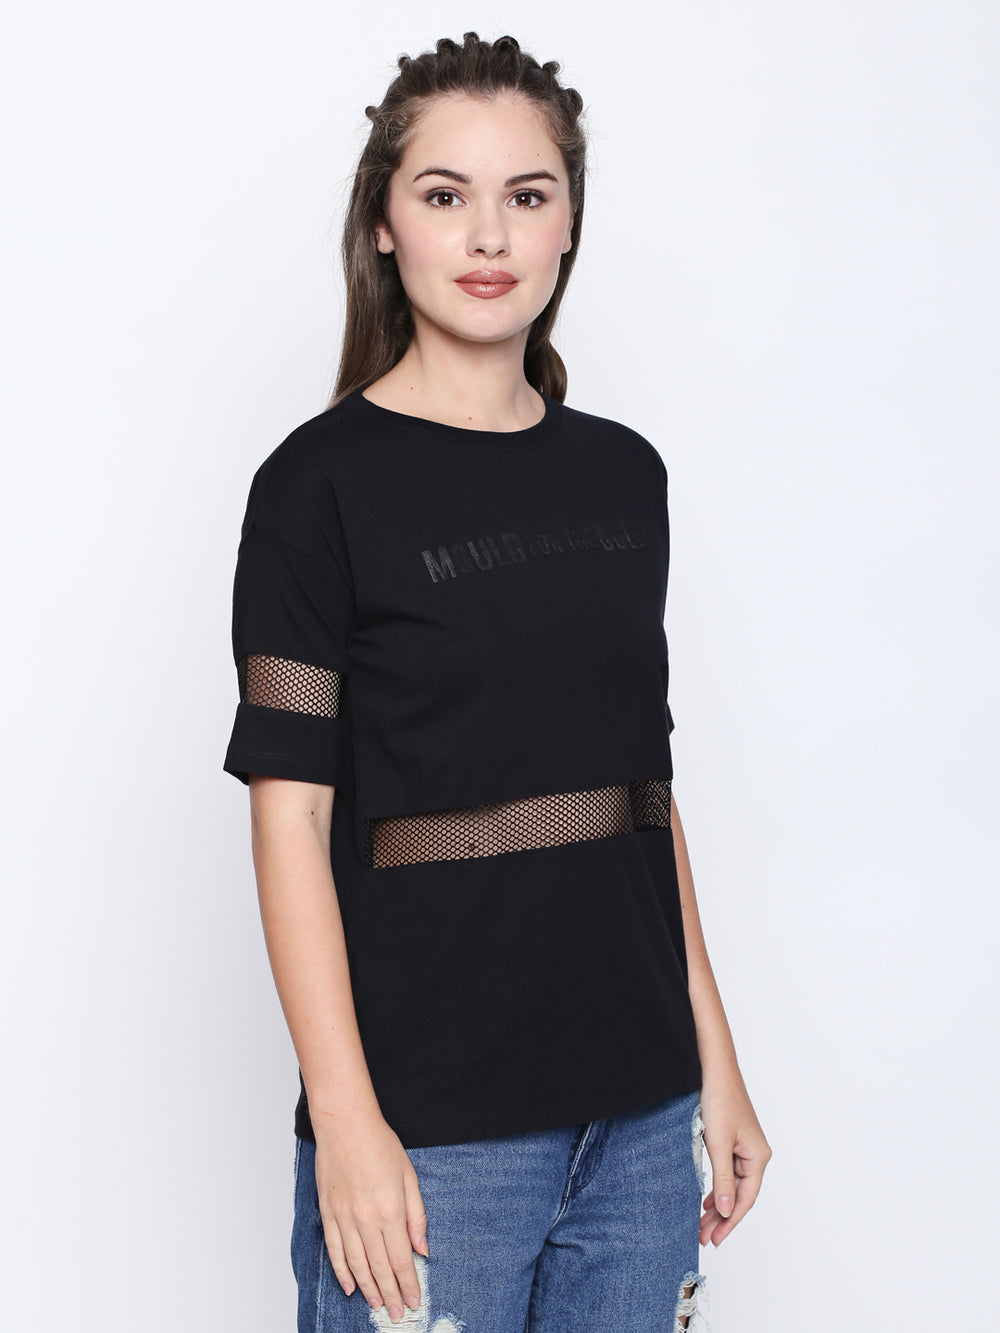 Disrupt Black Cotton Half Sleeve T-Shirt